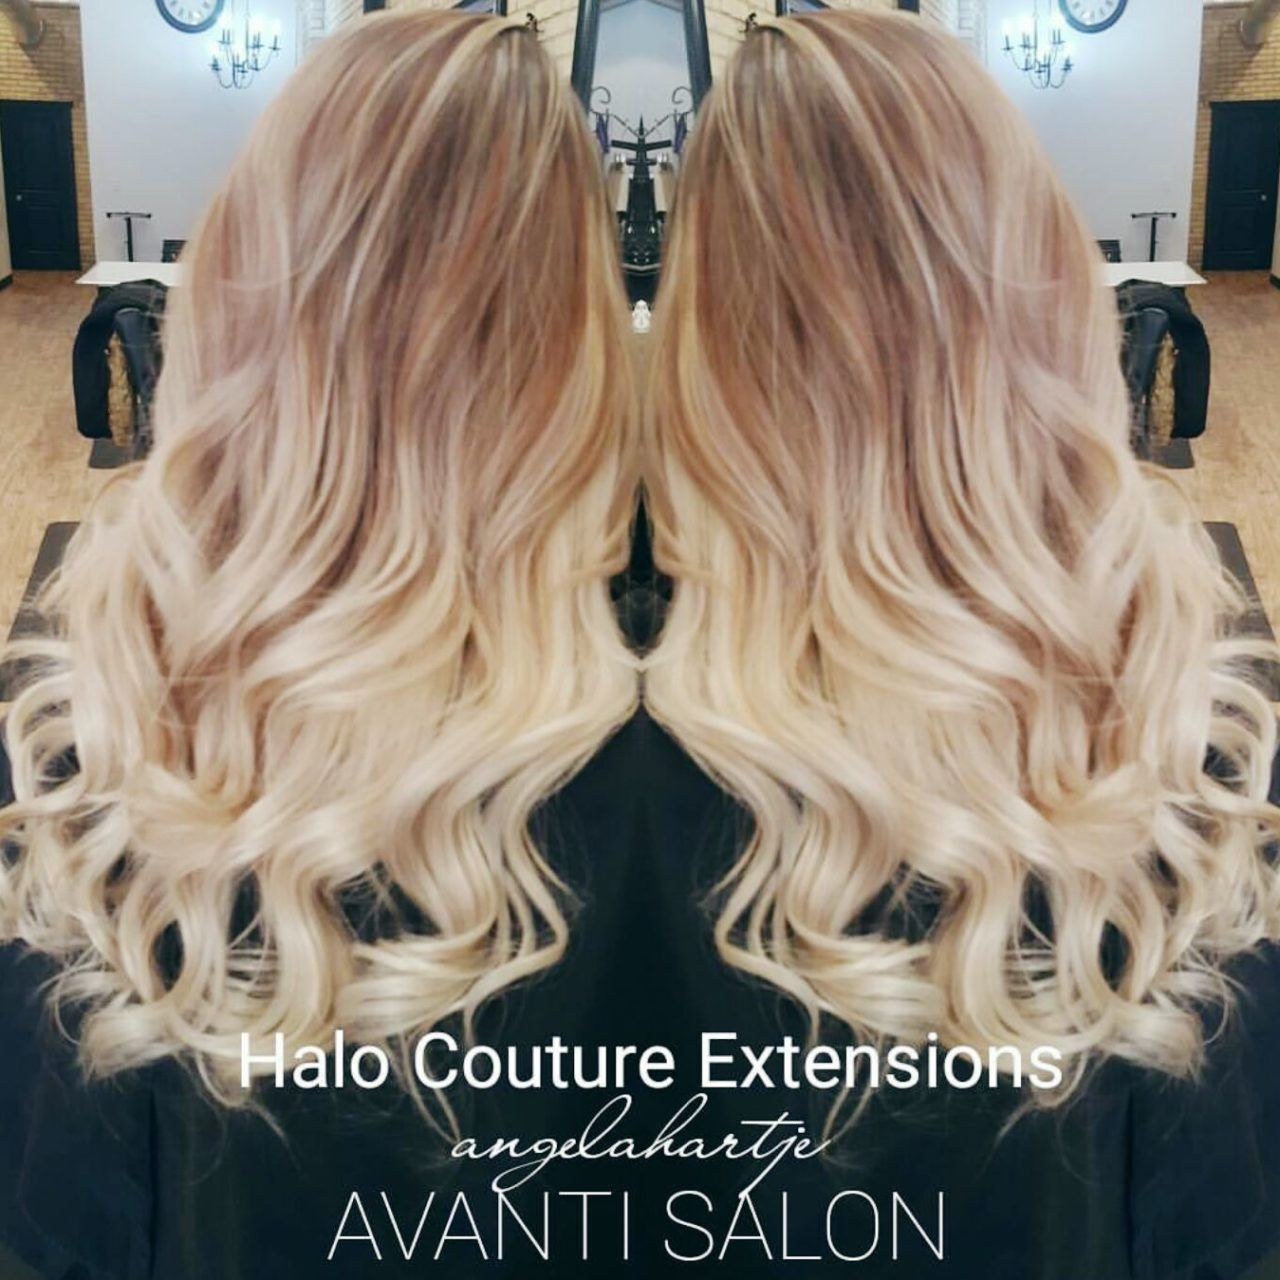 Halocouture Extensions What Is It And How Does It Work By Tami